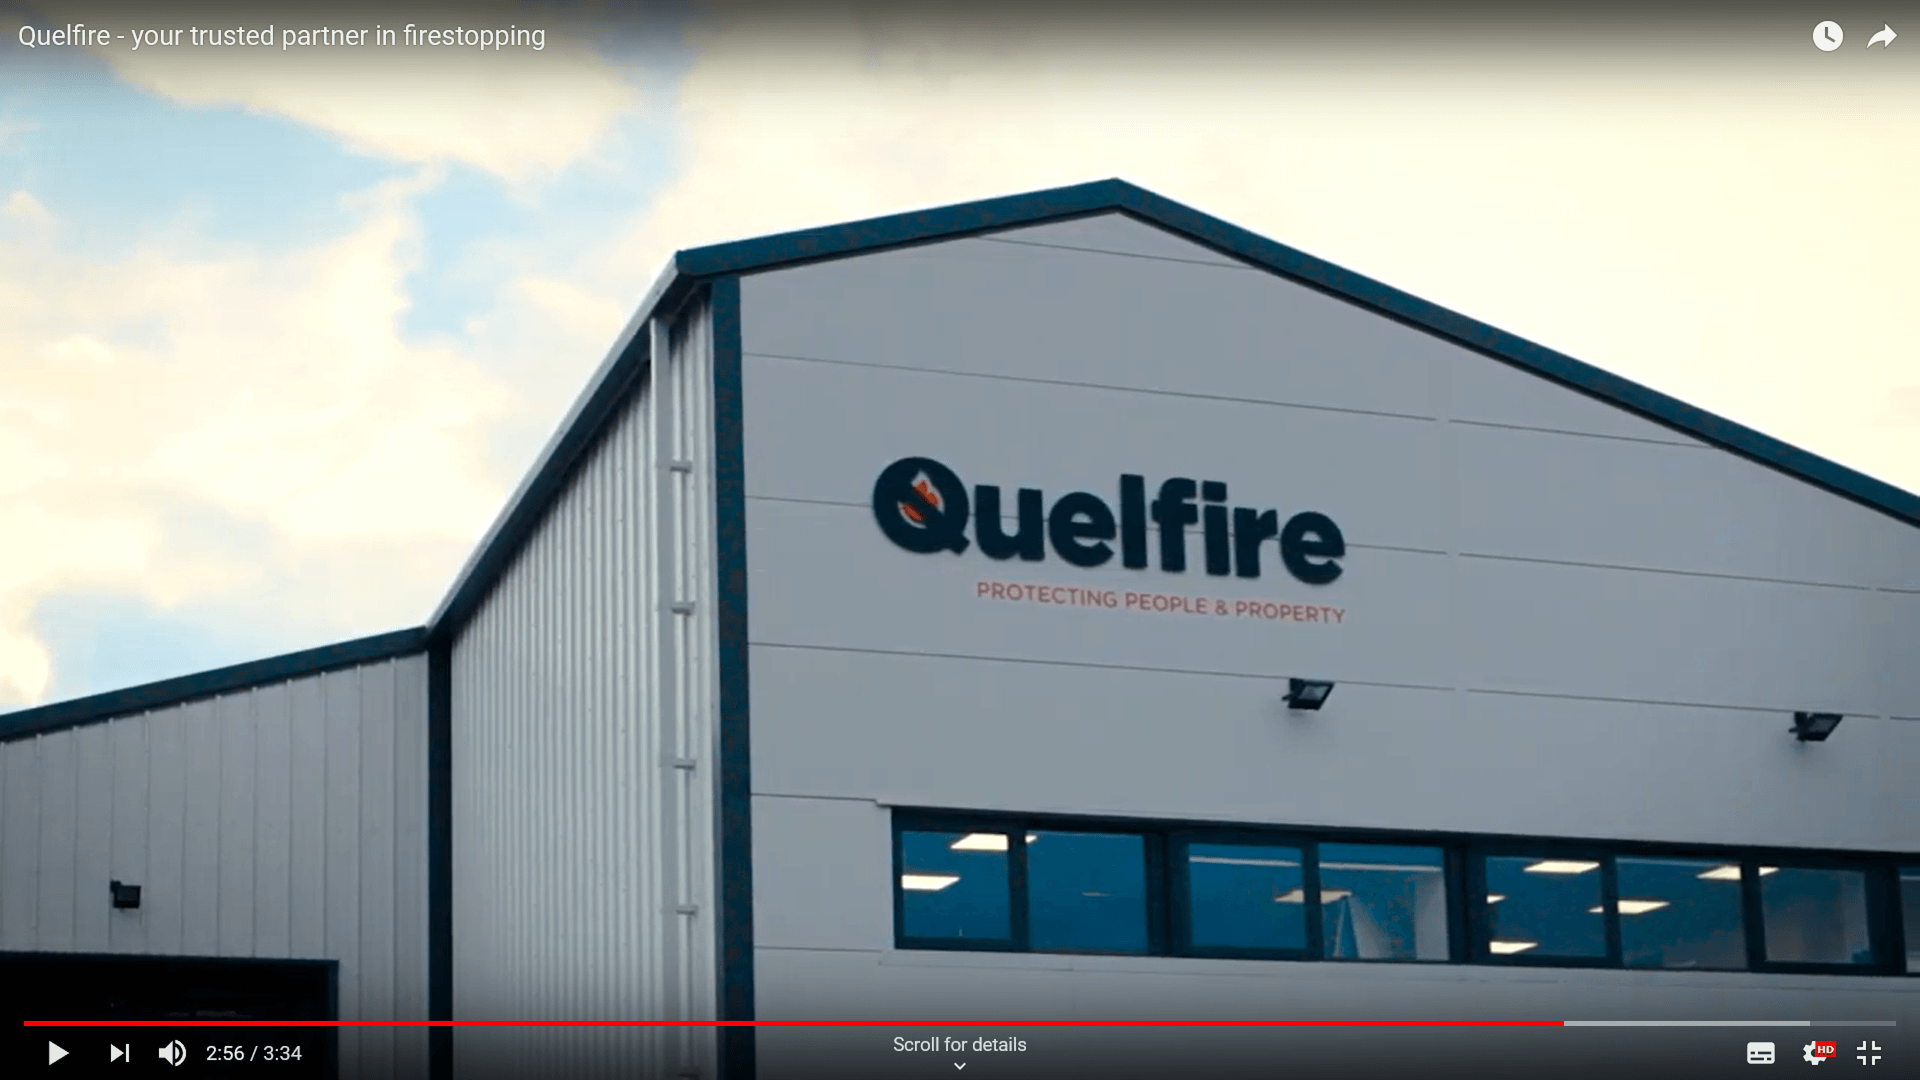 Who is Quelfire?